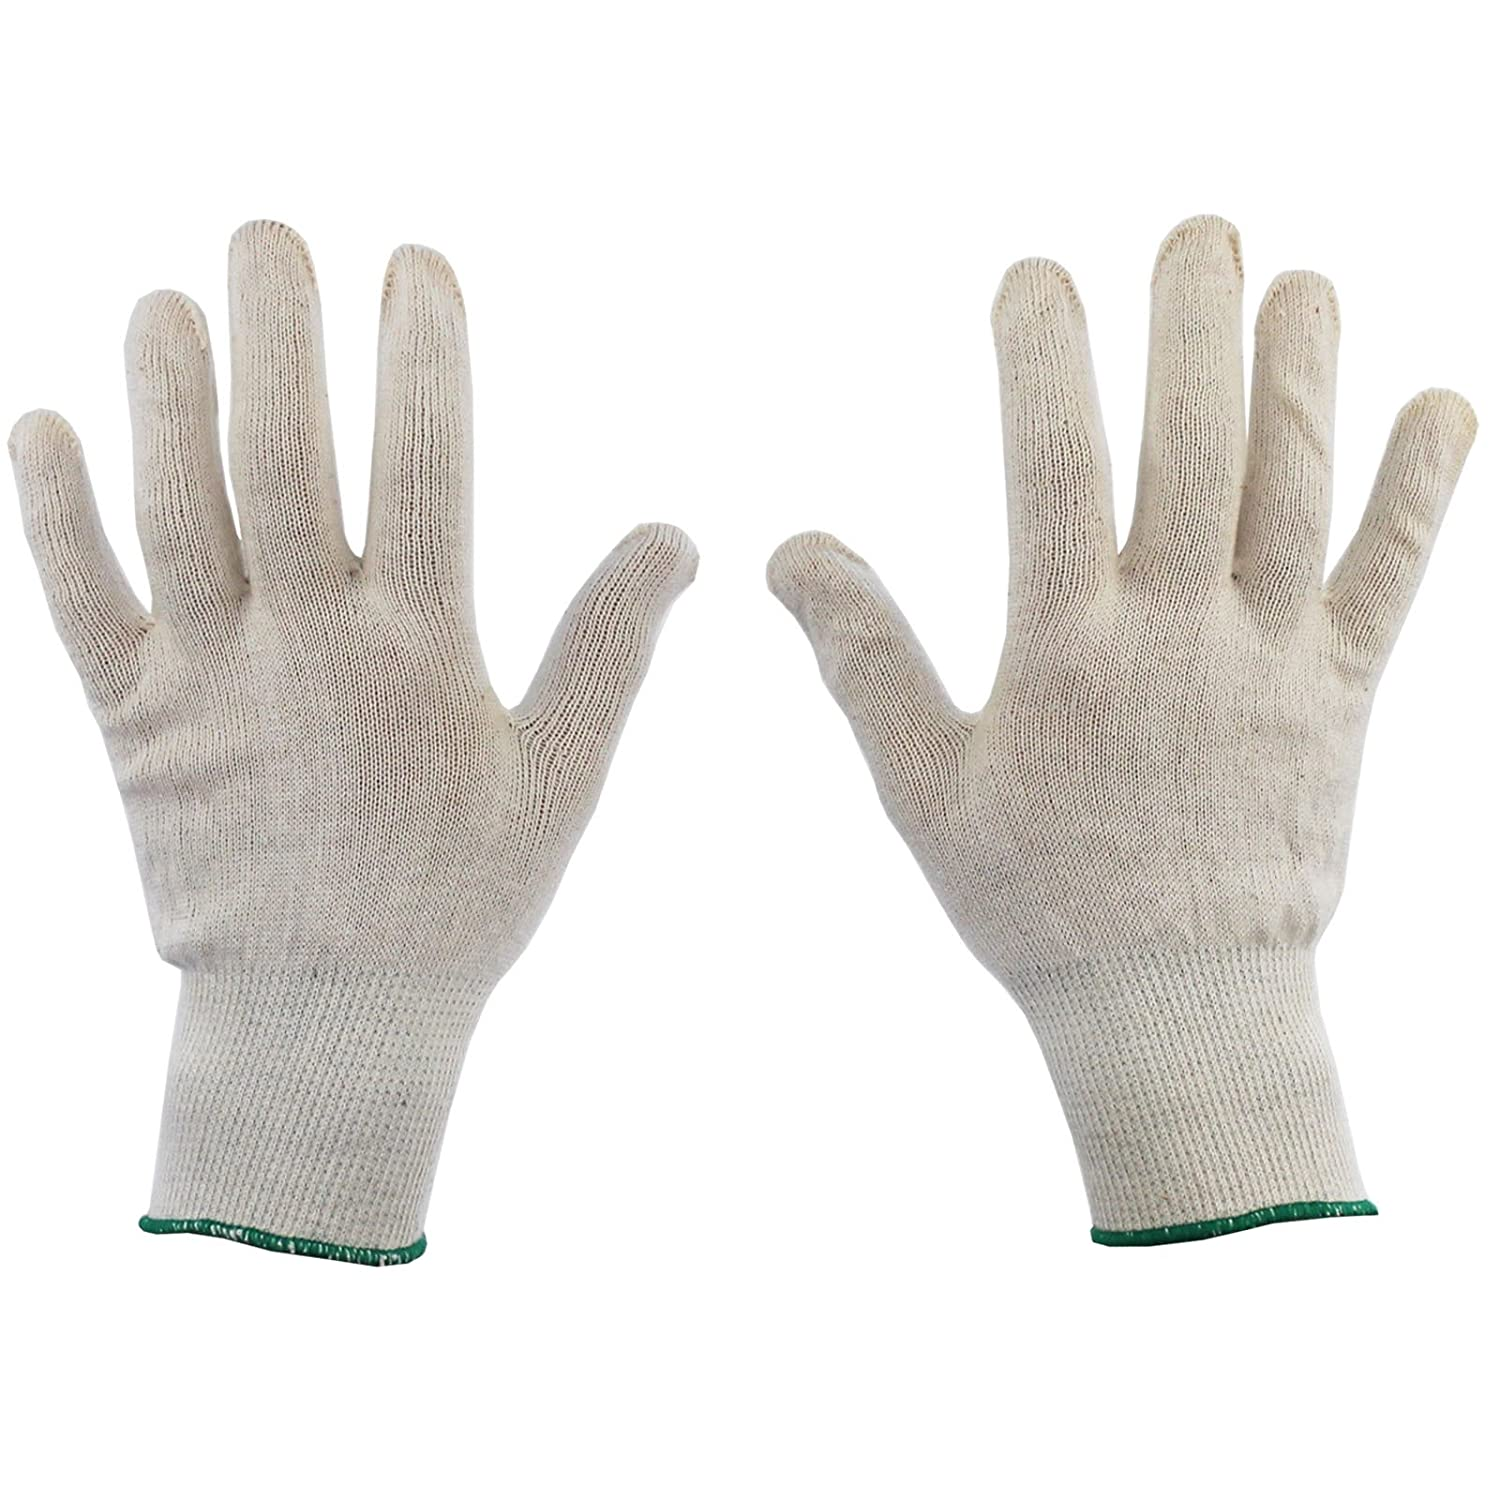 Black cotton gloves for eczema - 6 Pairs Size 8 Dermatological Cotton Gloves Dry Skin Eczema Moisturising Cream Amazon Co Uk Diy Tools